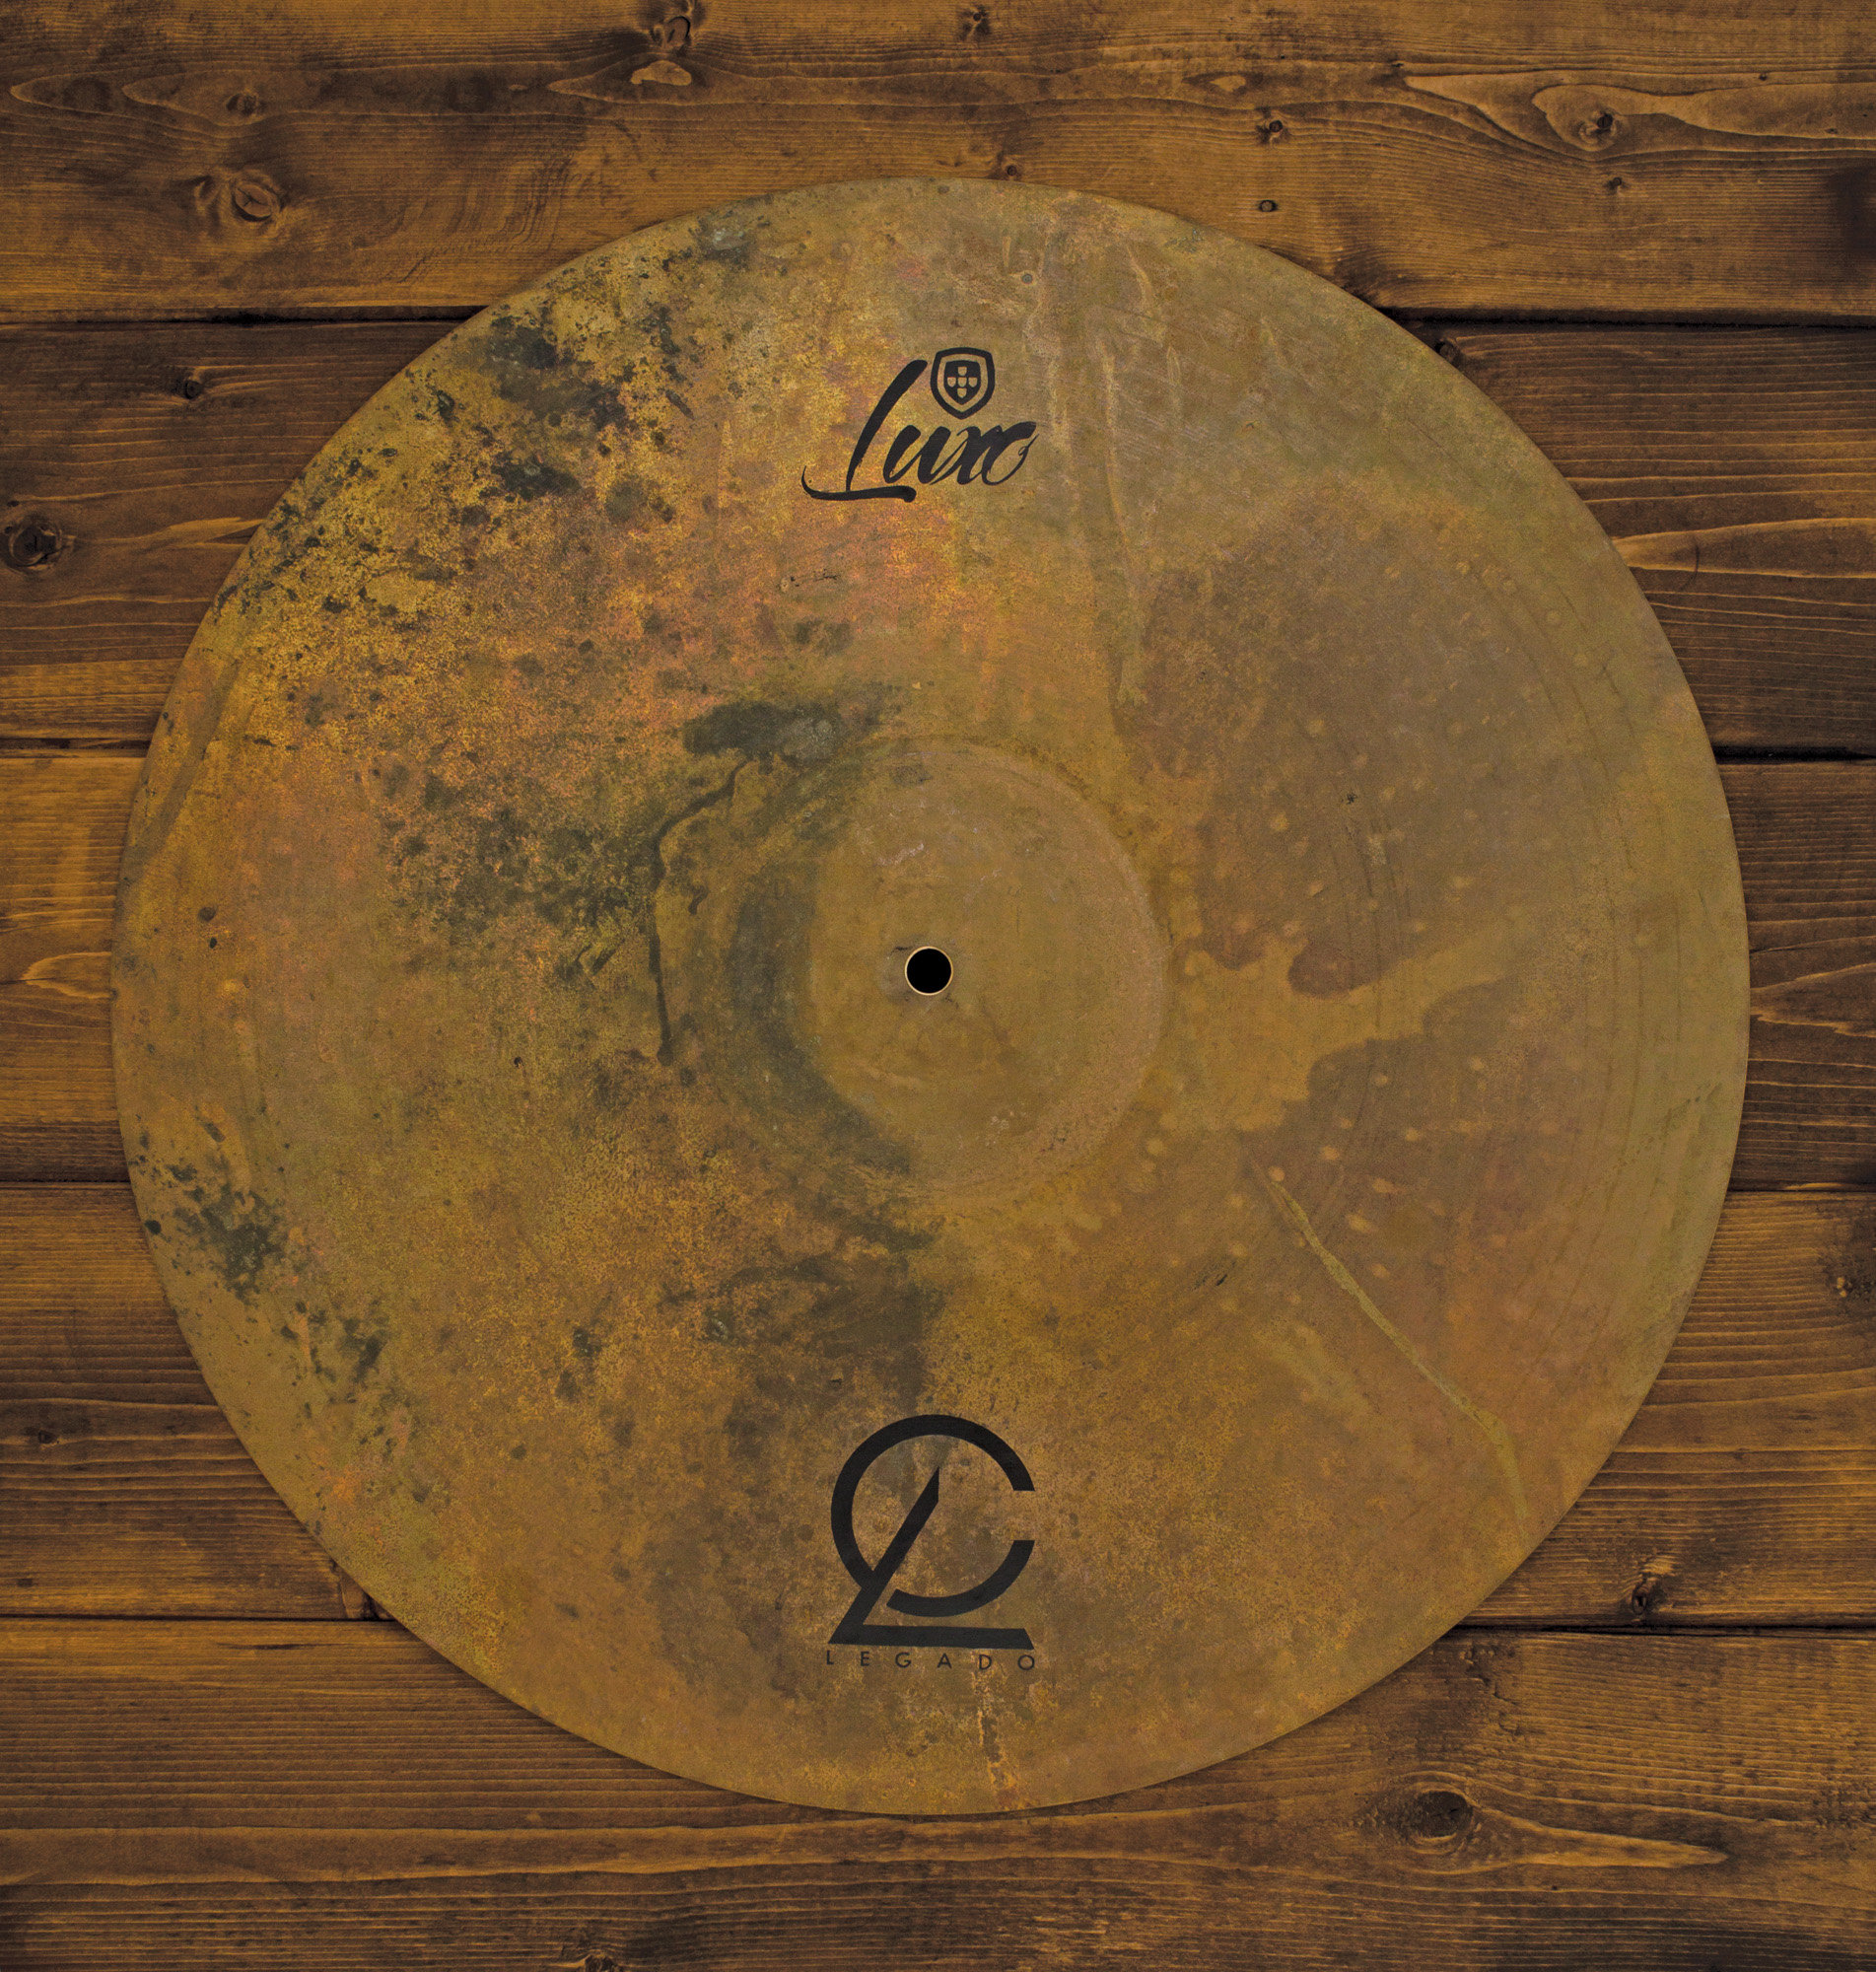 Legado Cymbals - Heritage, 79V, Luxo Raw, and Caspian Series